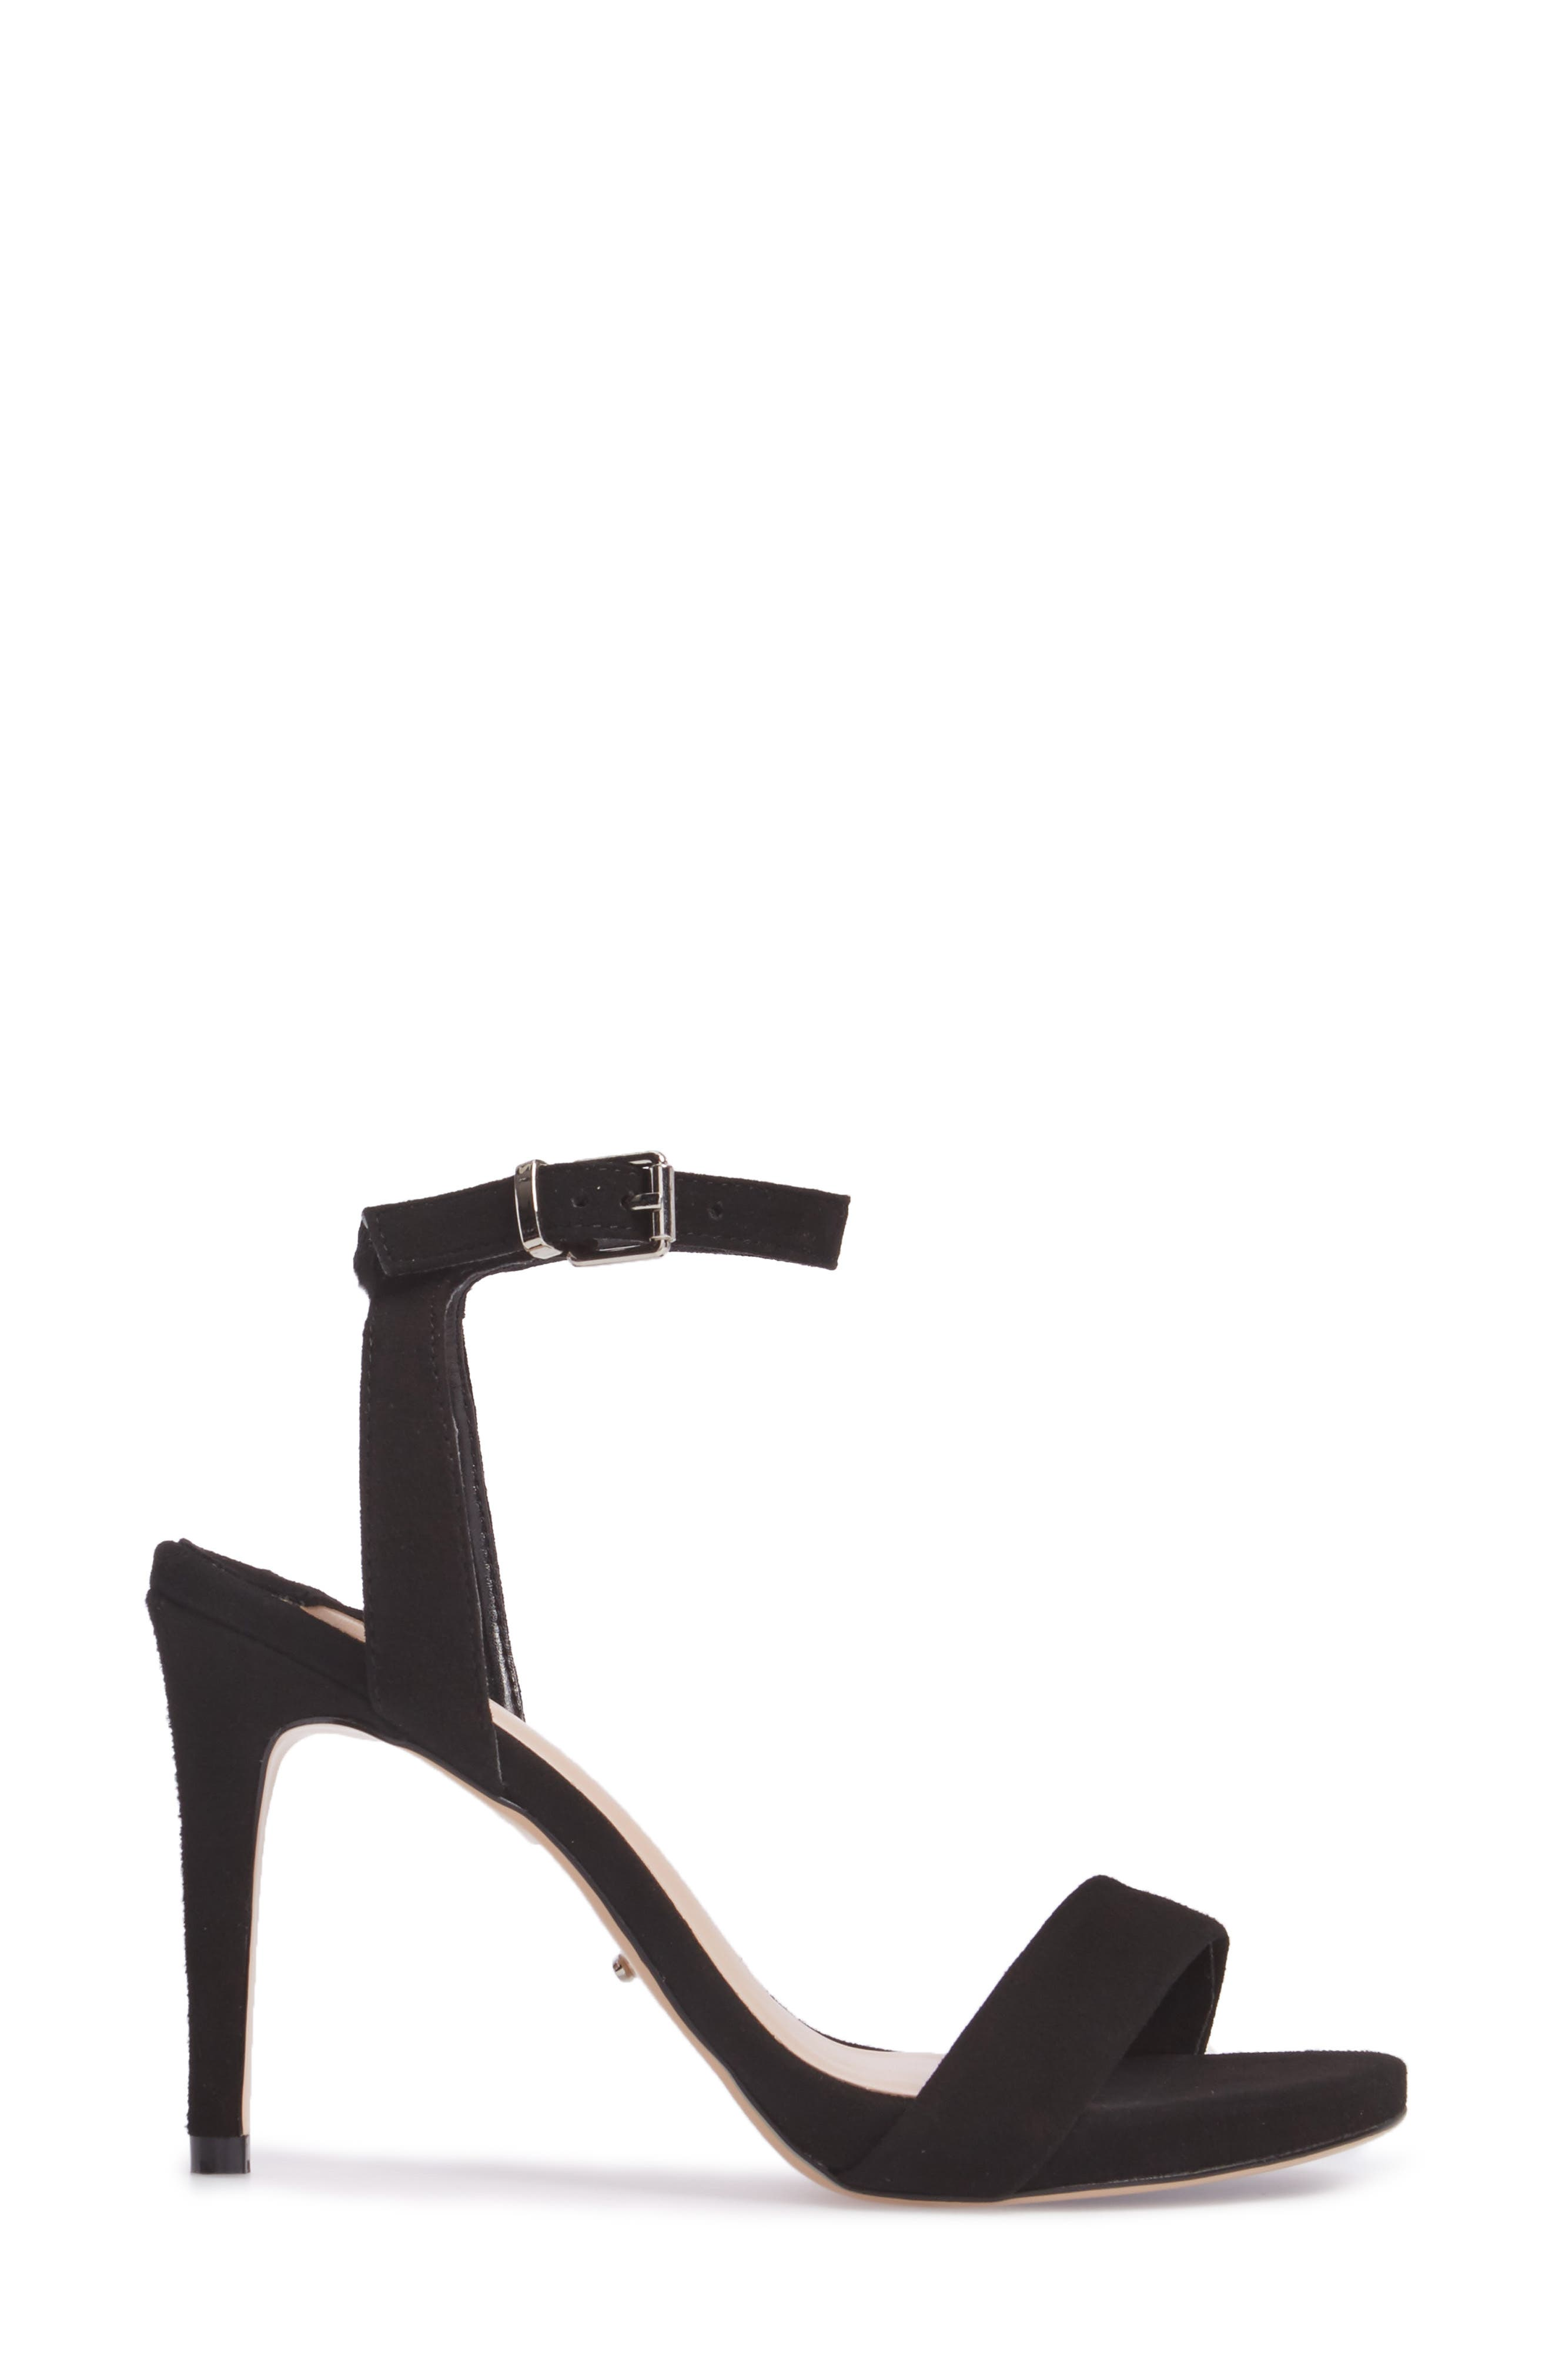 TONY BIANCO,                             Char Ankle Cuff Sandal,                             Alternate thumbnail 3, color,                             001